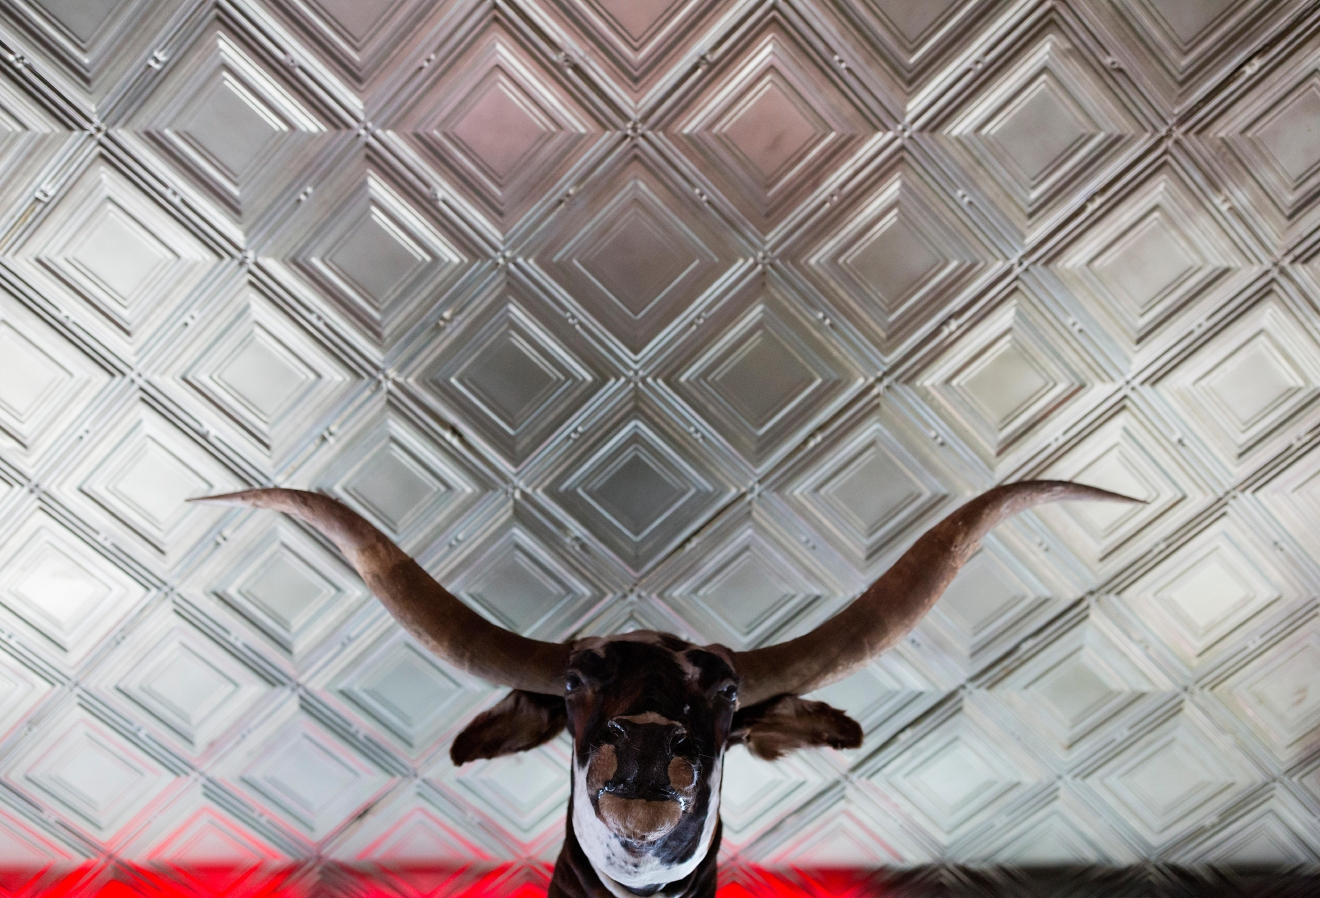 A stuffed bull hangs over the door at Tini Bigs Lounge. (Sy Bean / Seattle Refined)